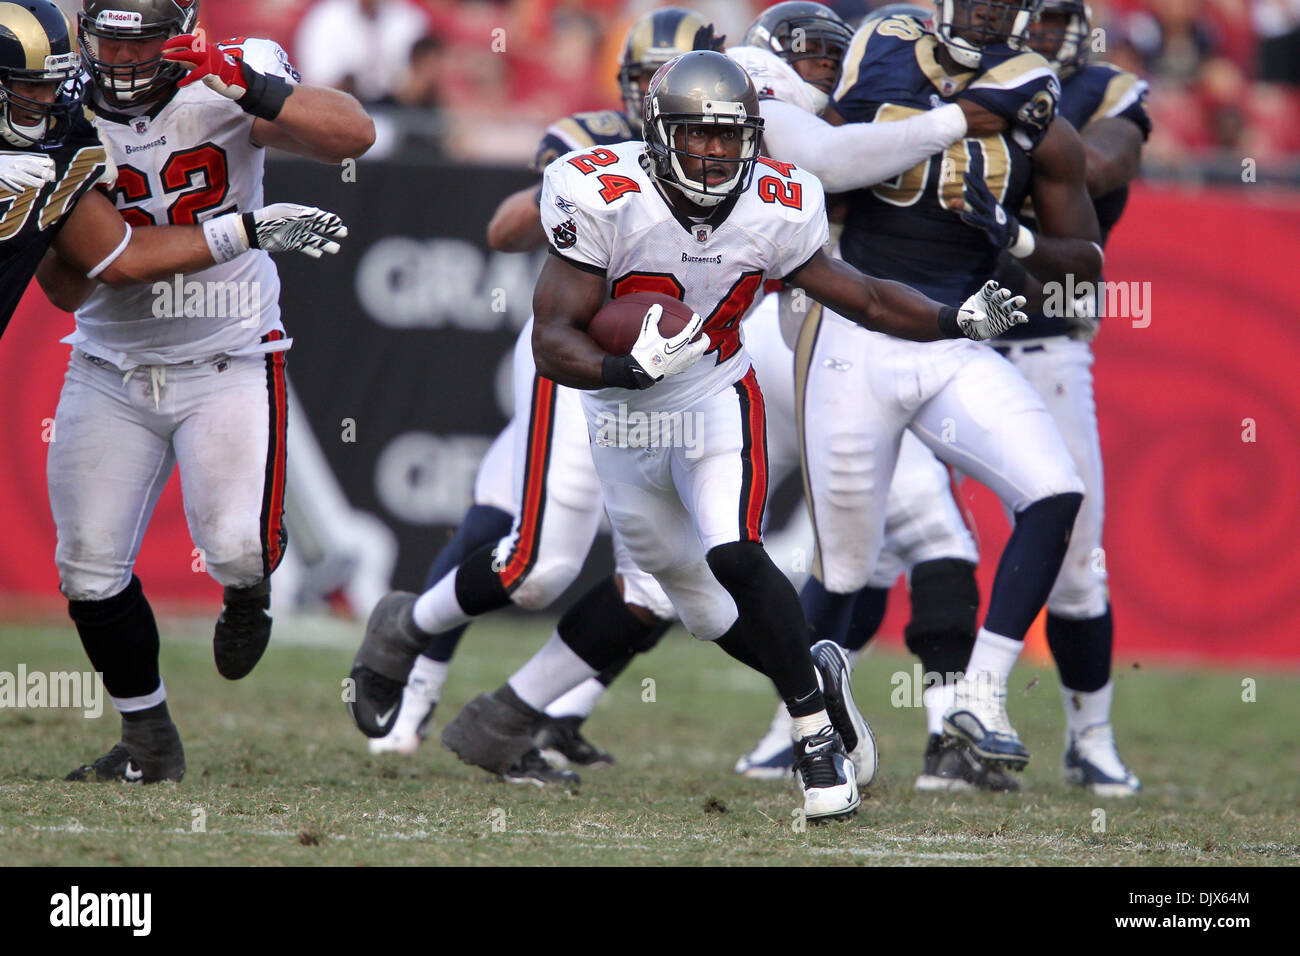 Oct. 24, 2010 - Tampa, Florida, United States of America - Tampa Bay Buccaneers running back Cadillac Williams (24) Stock Photo